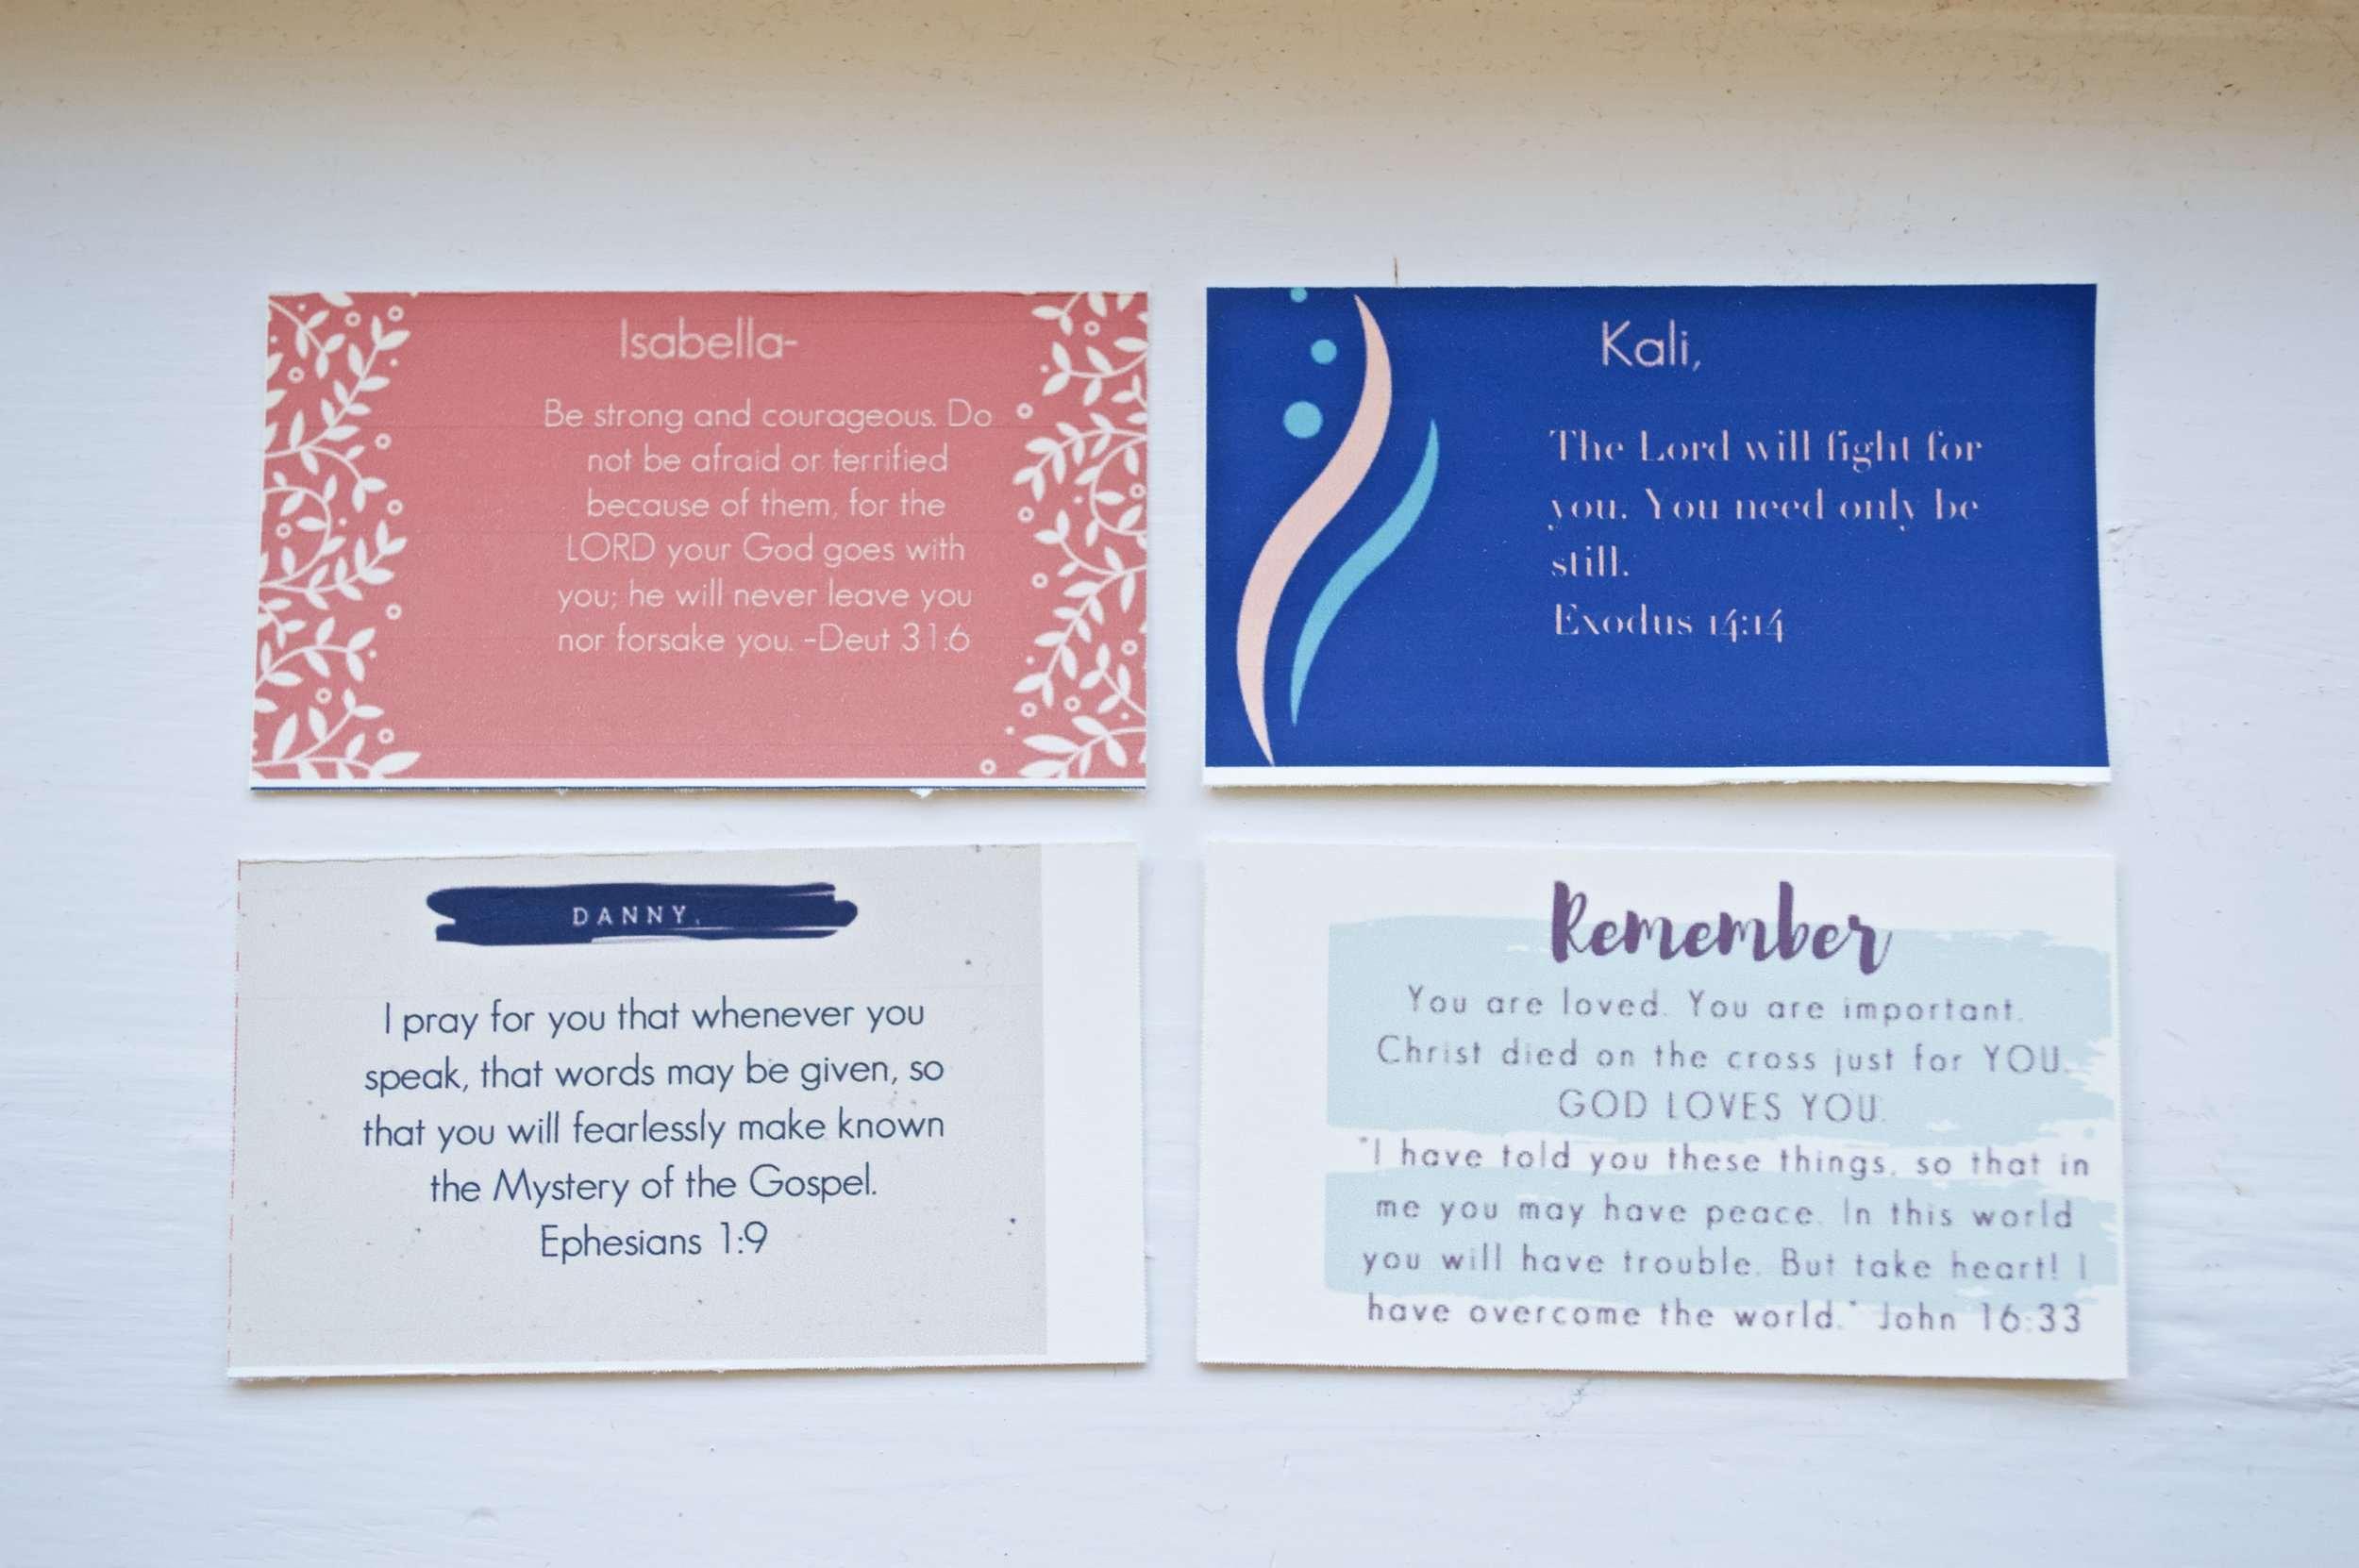 Scripture cards that can be personalized for your husband or children- with God's word speaking truth into their hearts in a beautiful, personal way!